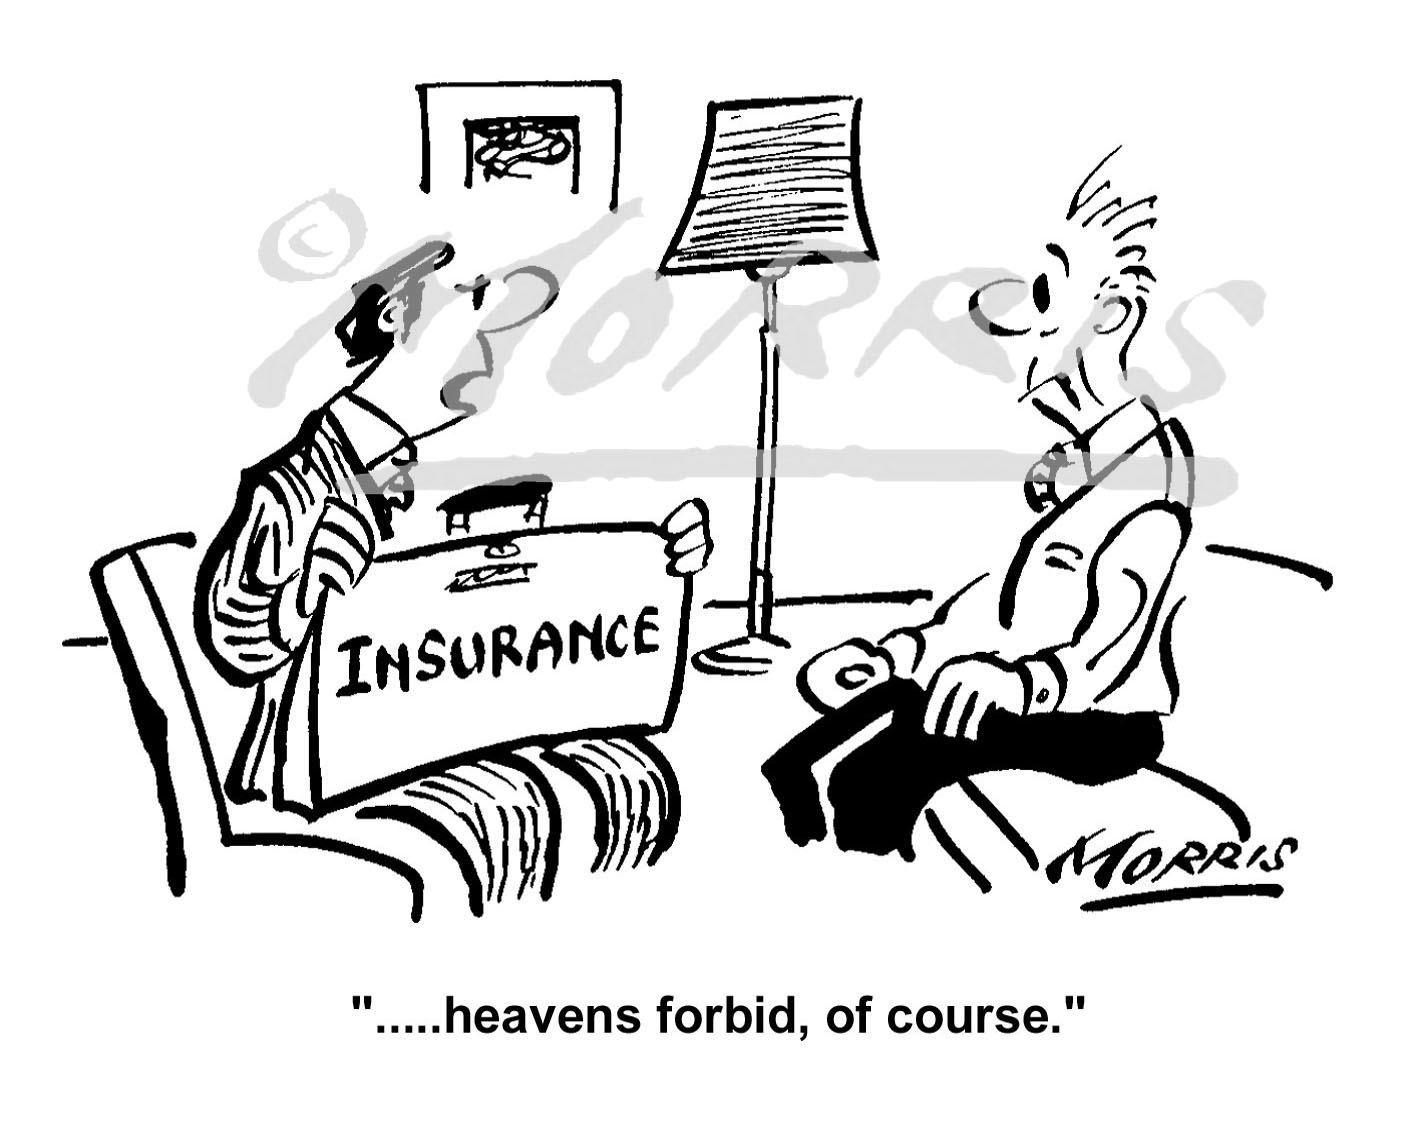 Insurance policy business cartoon Ref: 1430bw